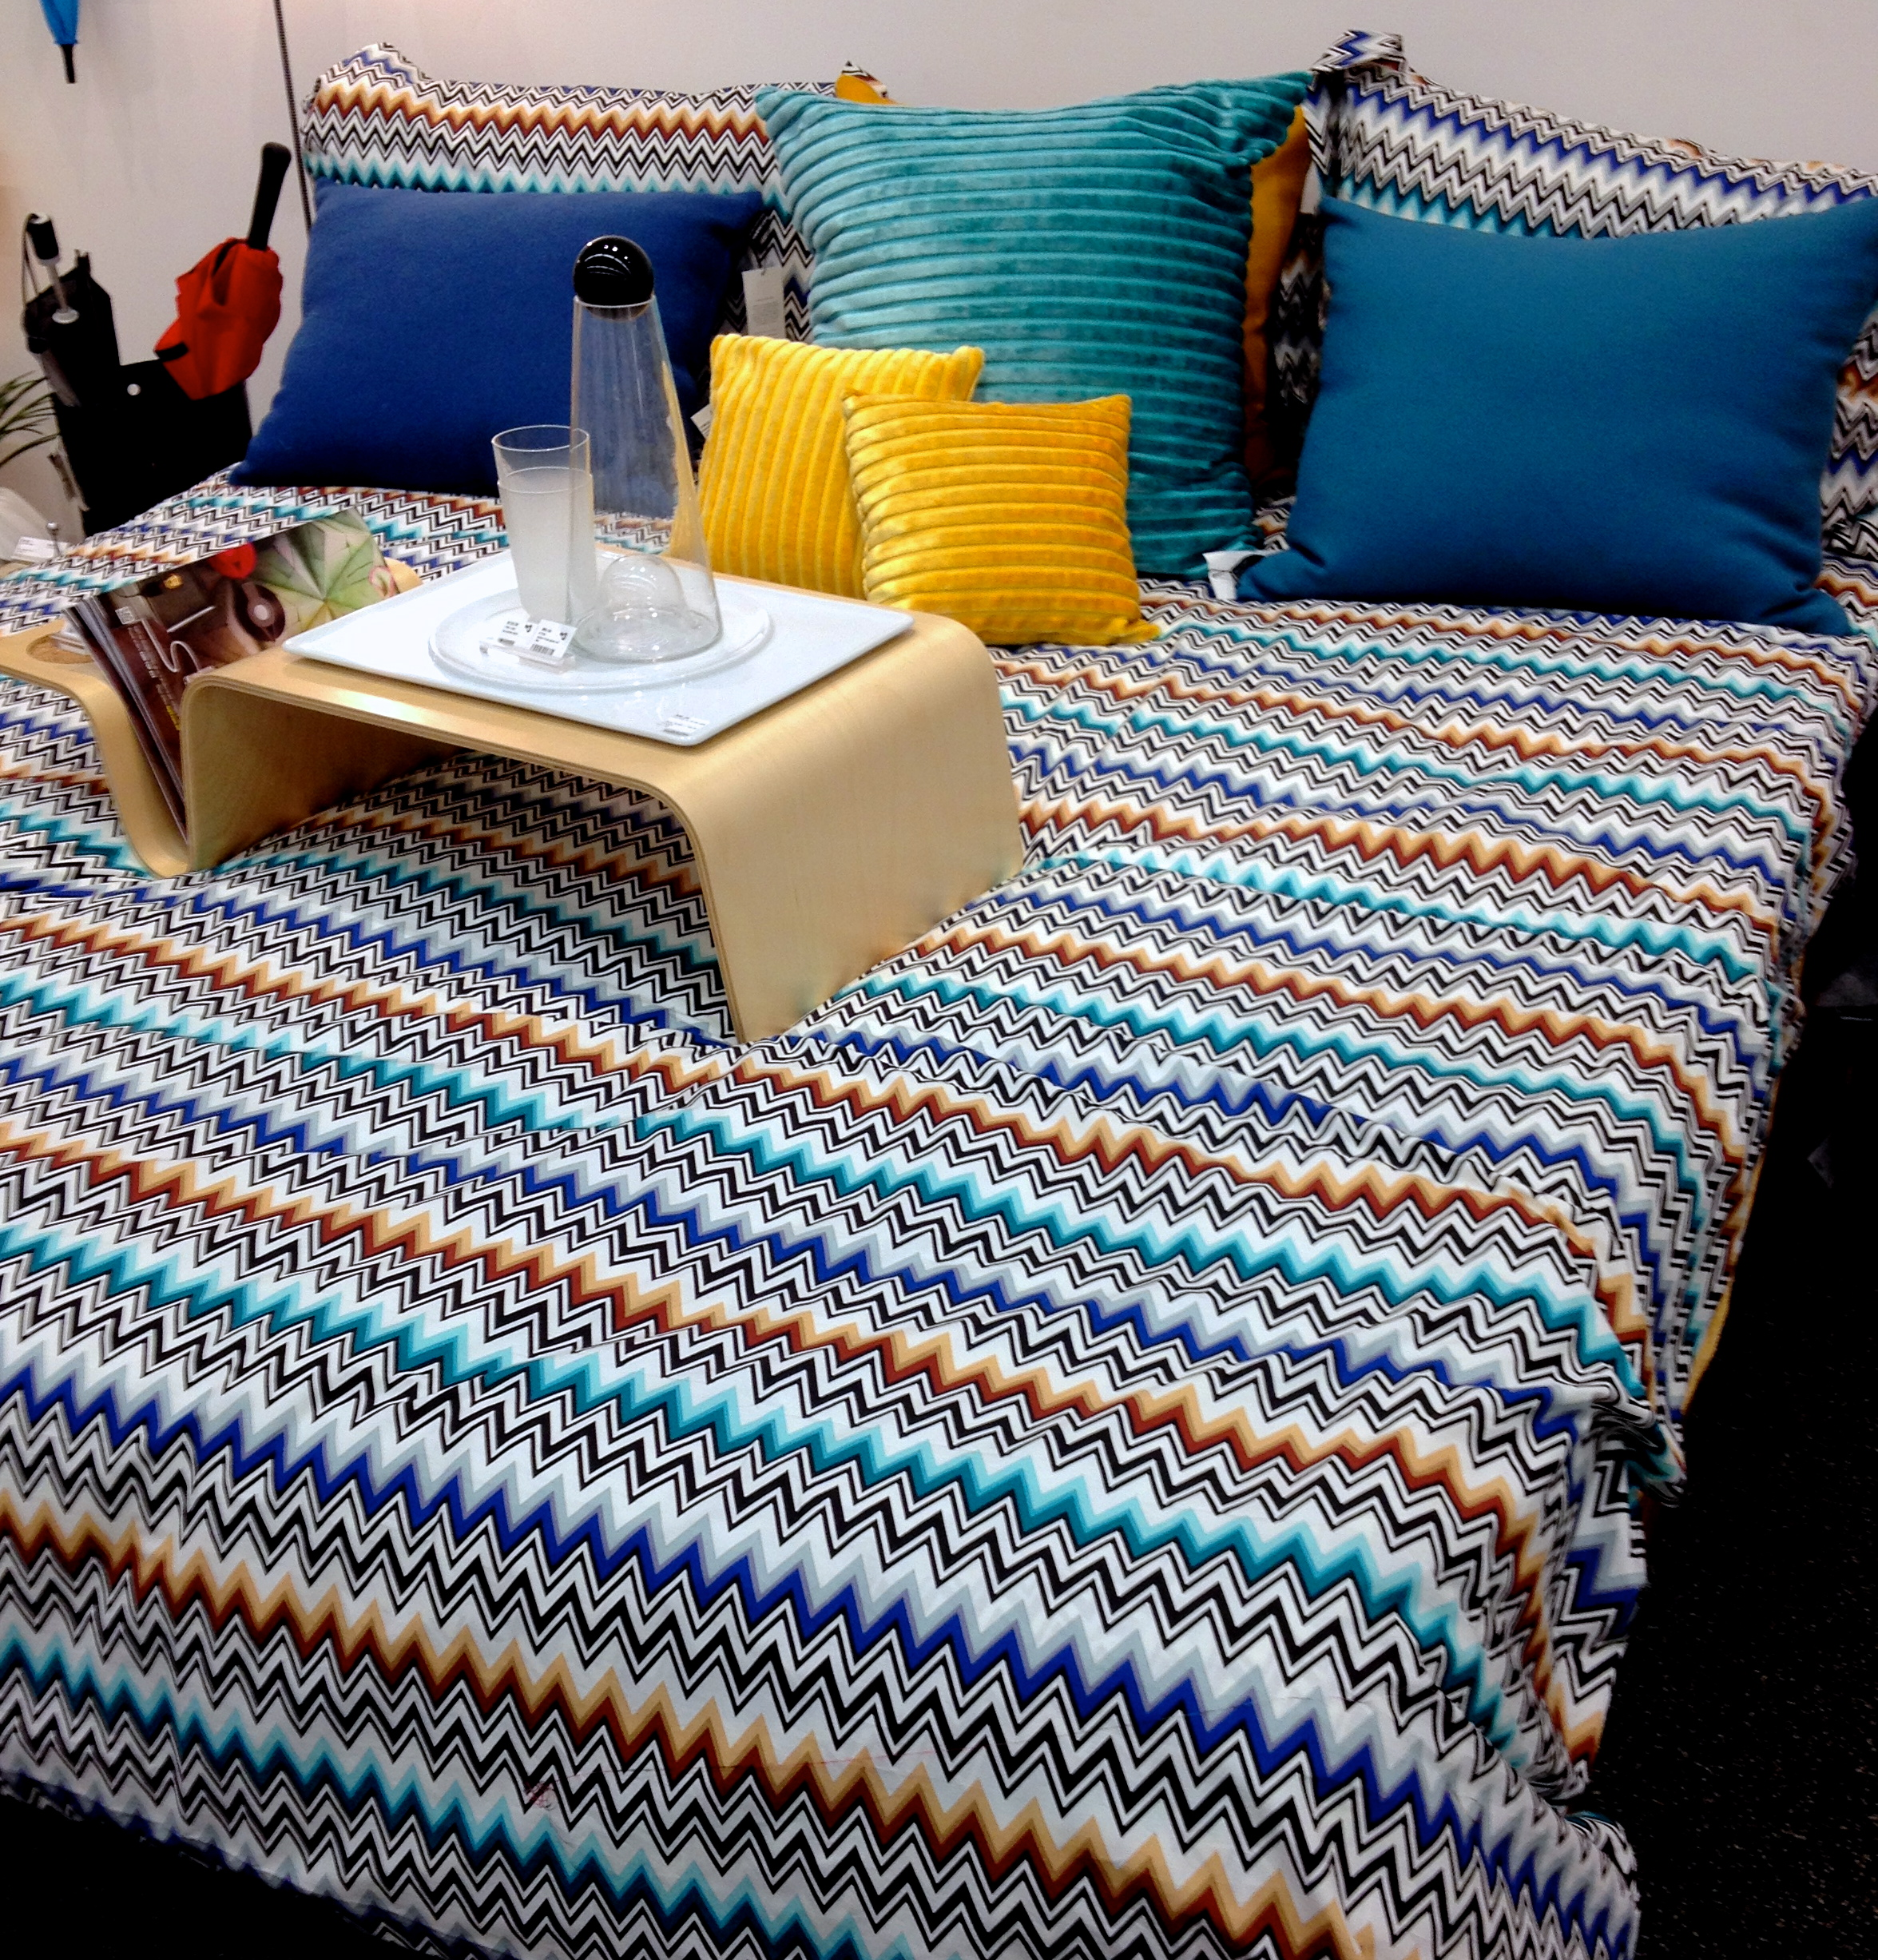 Bedding from Top3 by Design